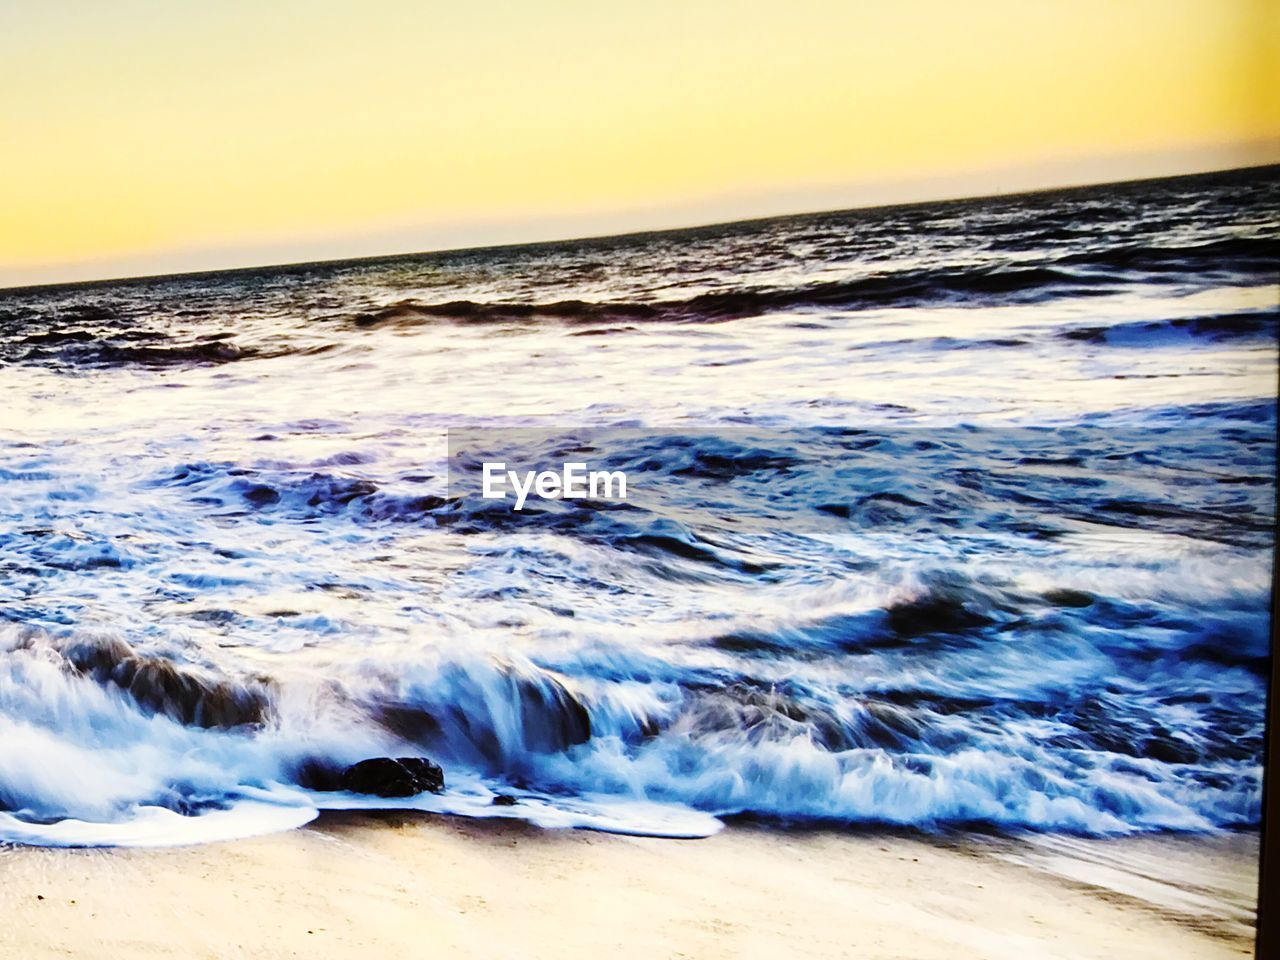 sea, wave, water, nature, beauty in nature, beach, horizon over water, sunset, shore, scenics, sand, no people, motion, outdoors, tranquility, power in nature, sky, day